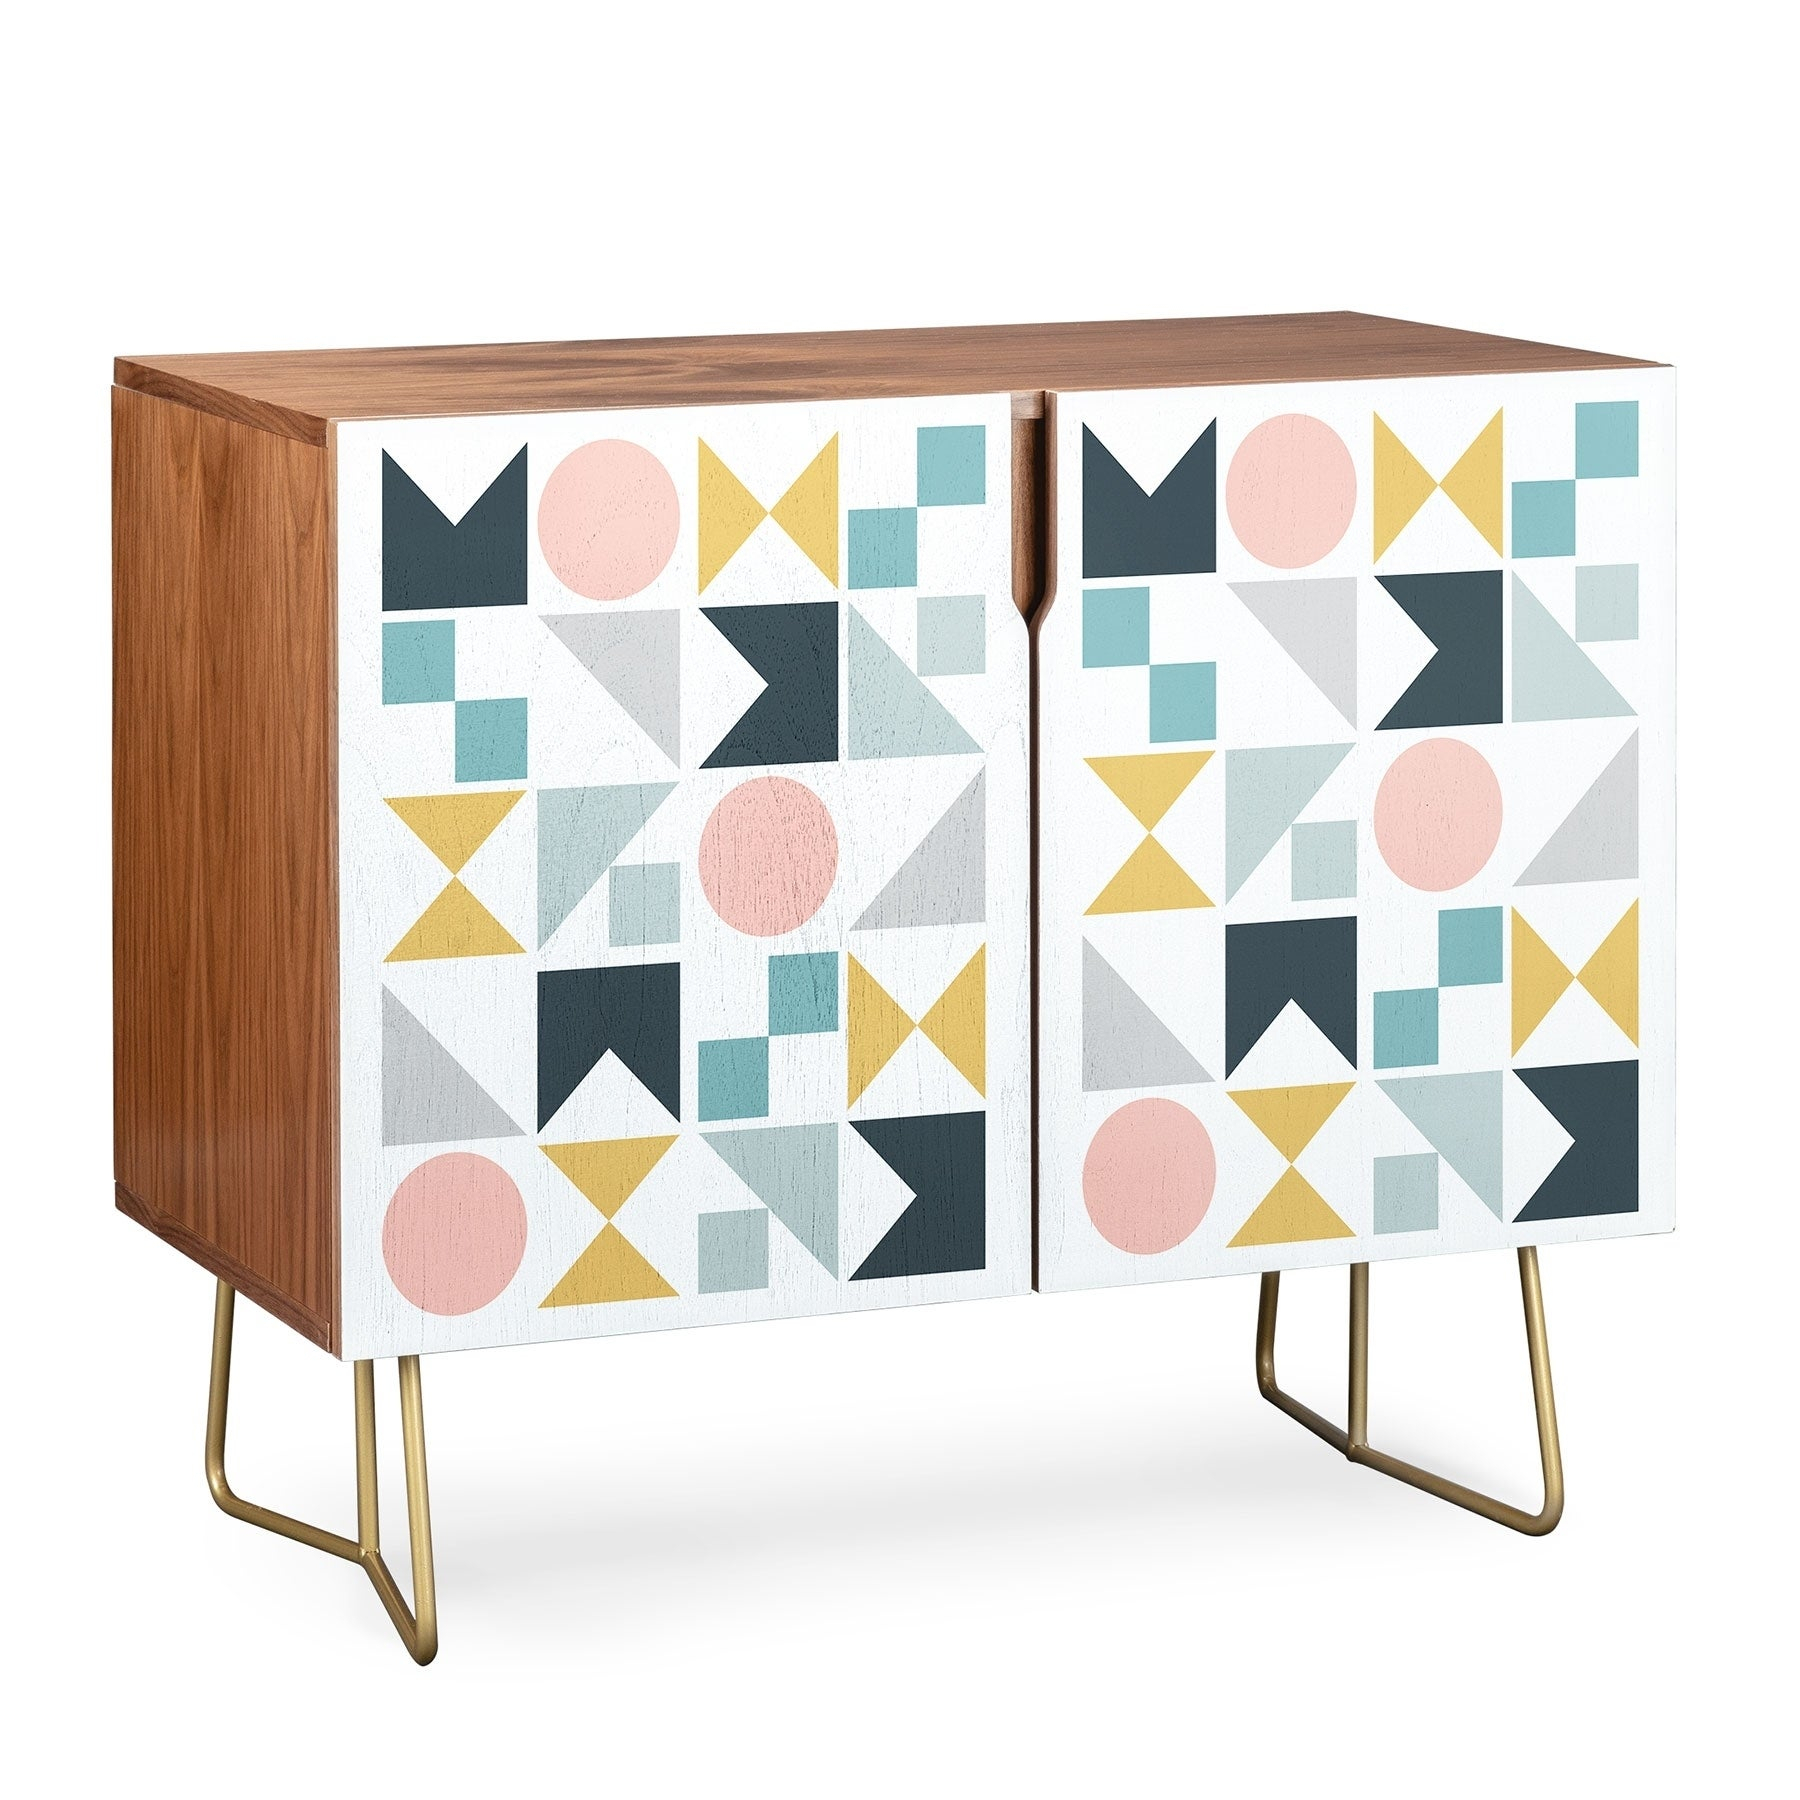 Deny Designs Modern Geometric Credenza (Walnut Or Birch, 2 Leg Options) Intended For Modele 7 Geometric Credenzas (Gallery 7 of 30)